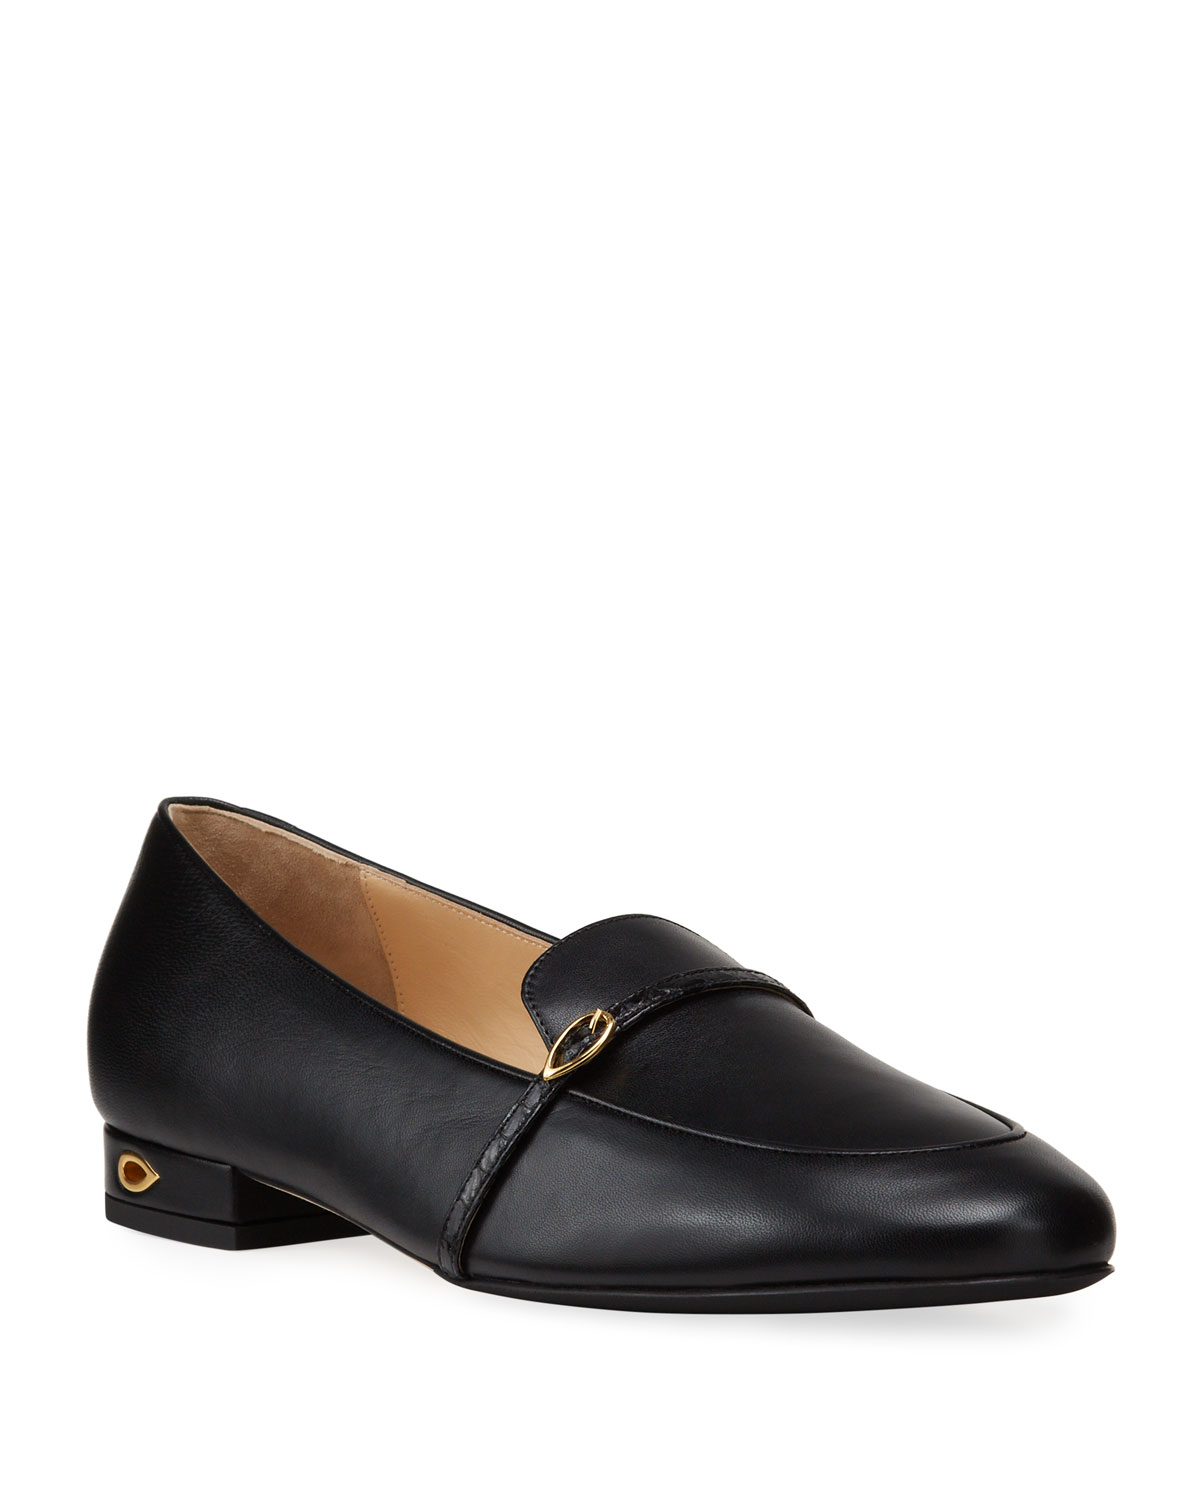 Leather Buckle Slip-On Loafers